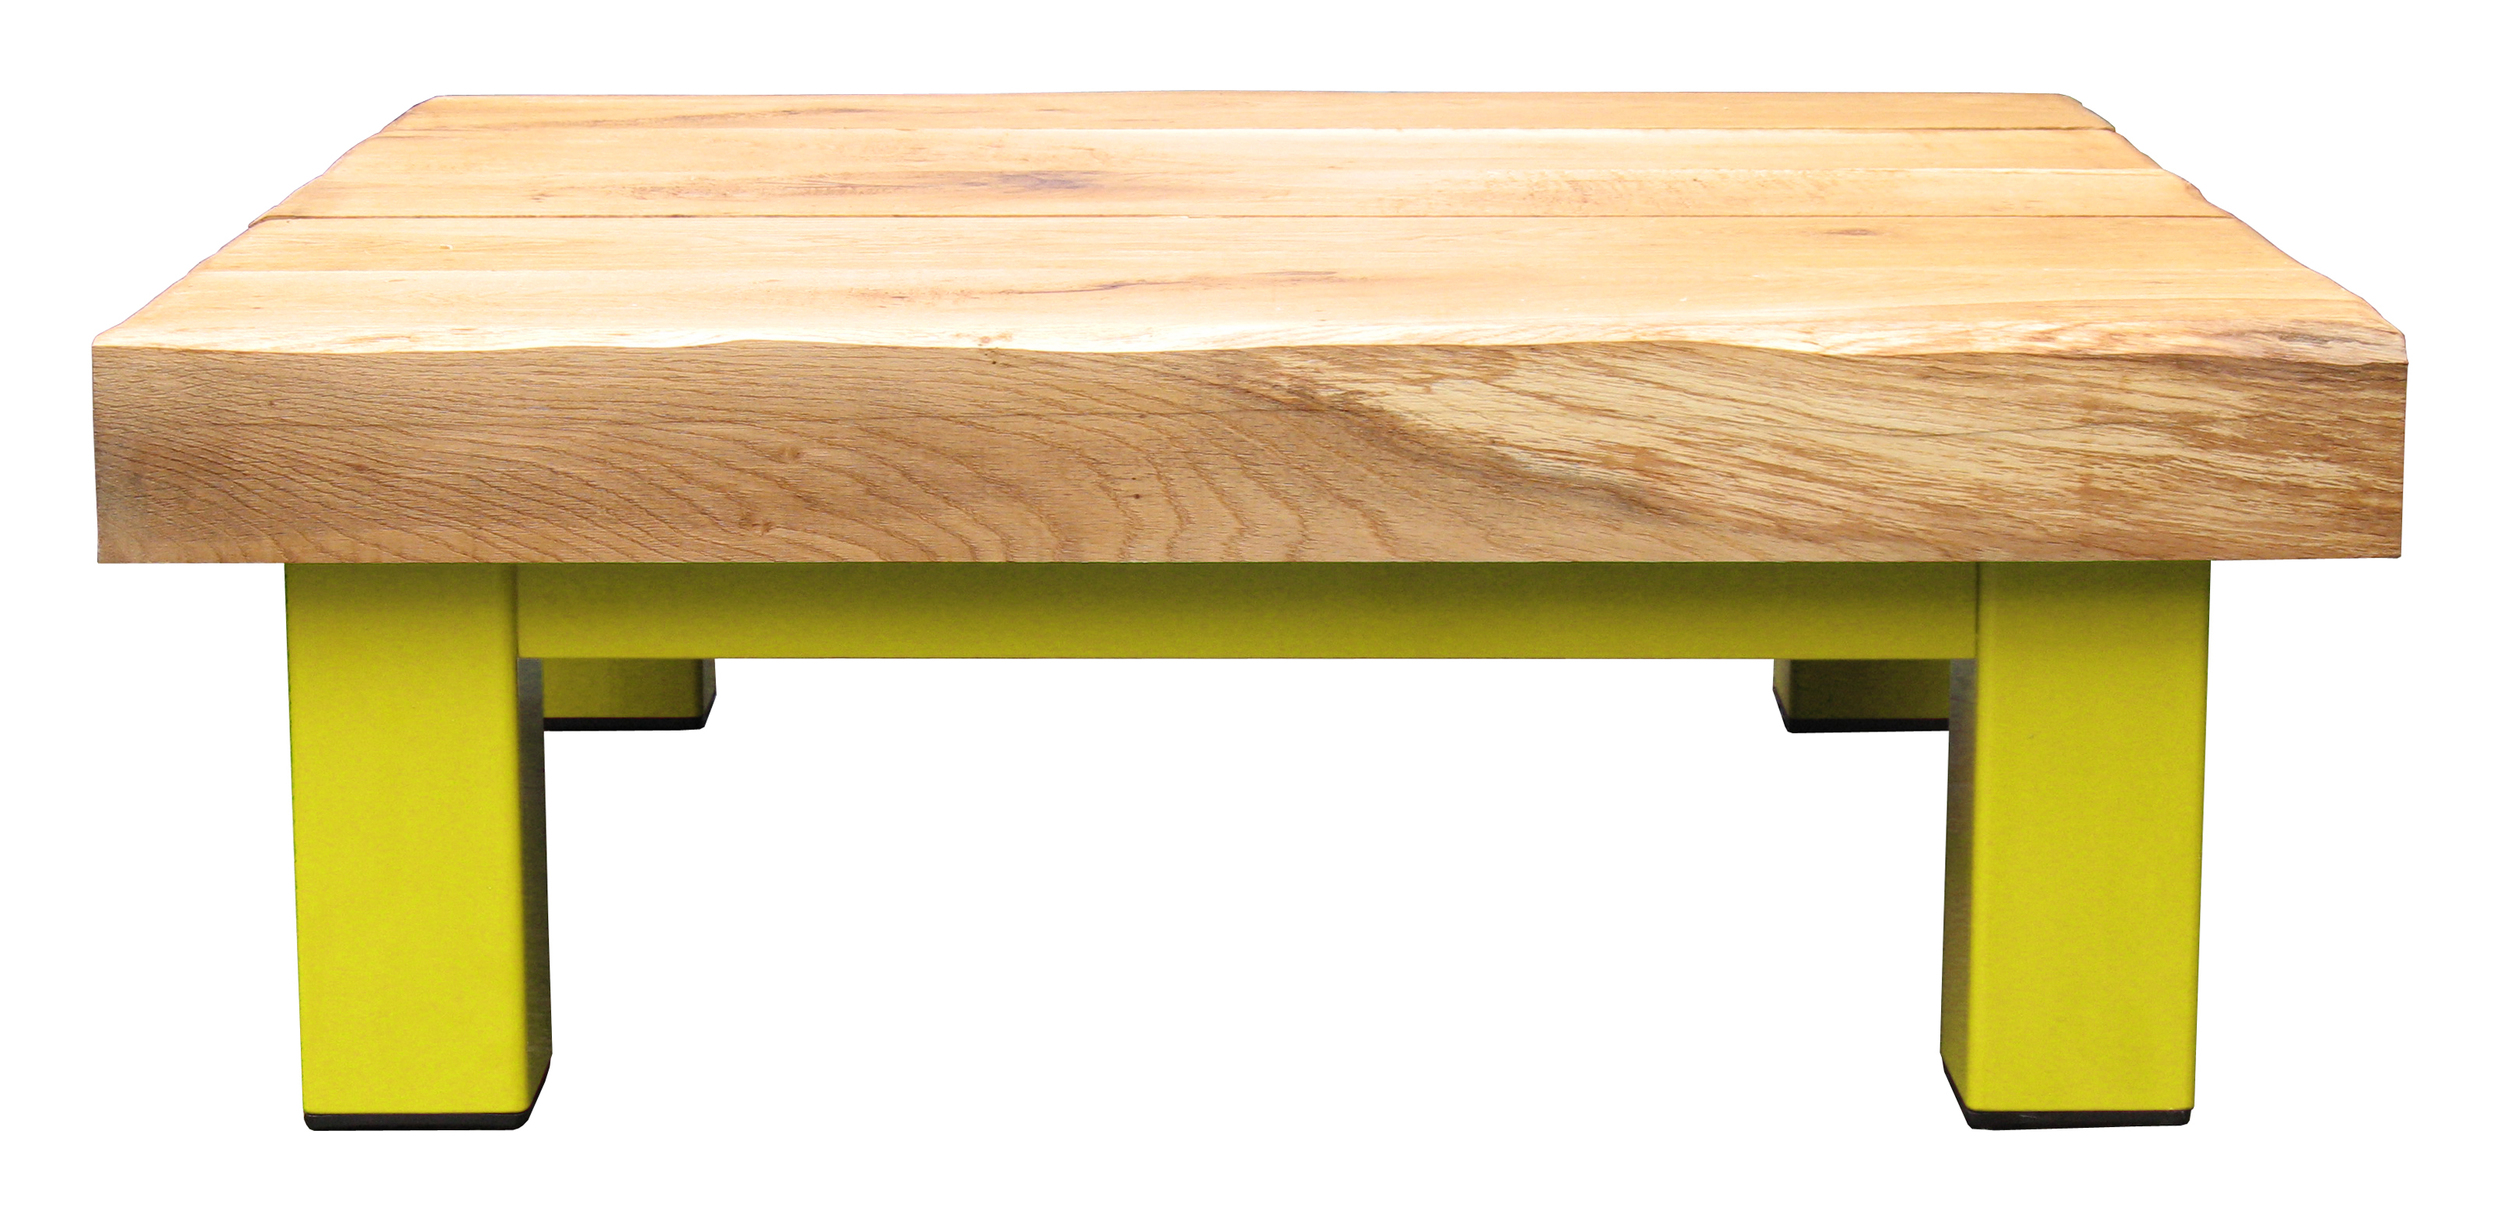 Oak & Iron Furniture Large Coffee Table - Sun Yellow